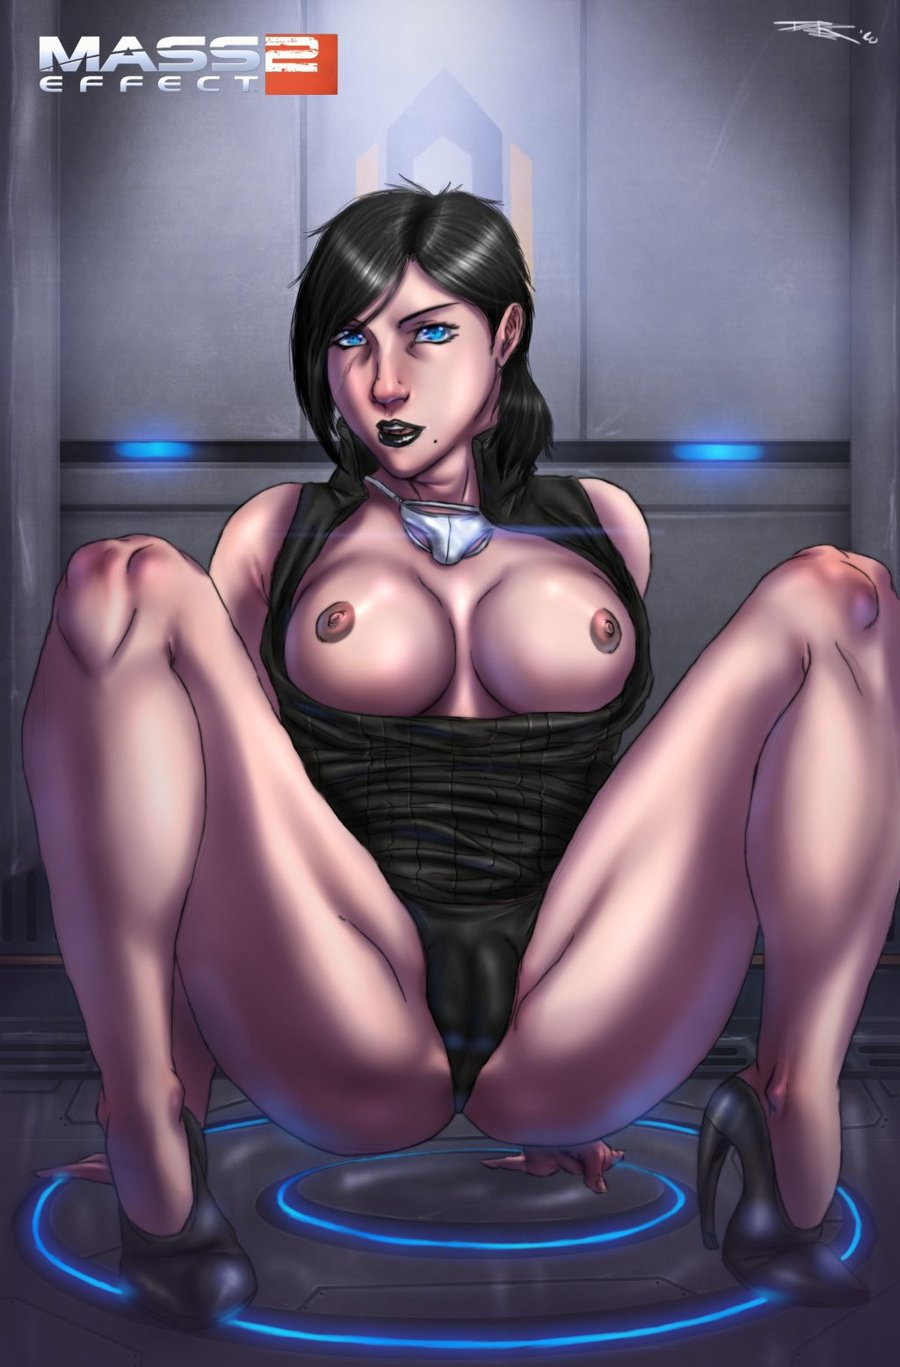 Moving mass effect hentai pics adult pic